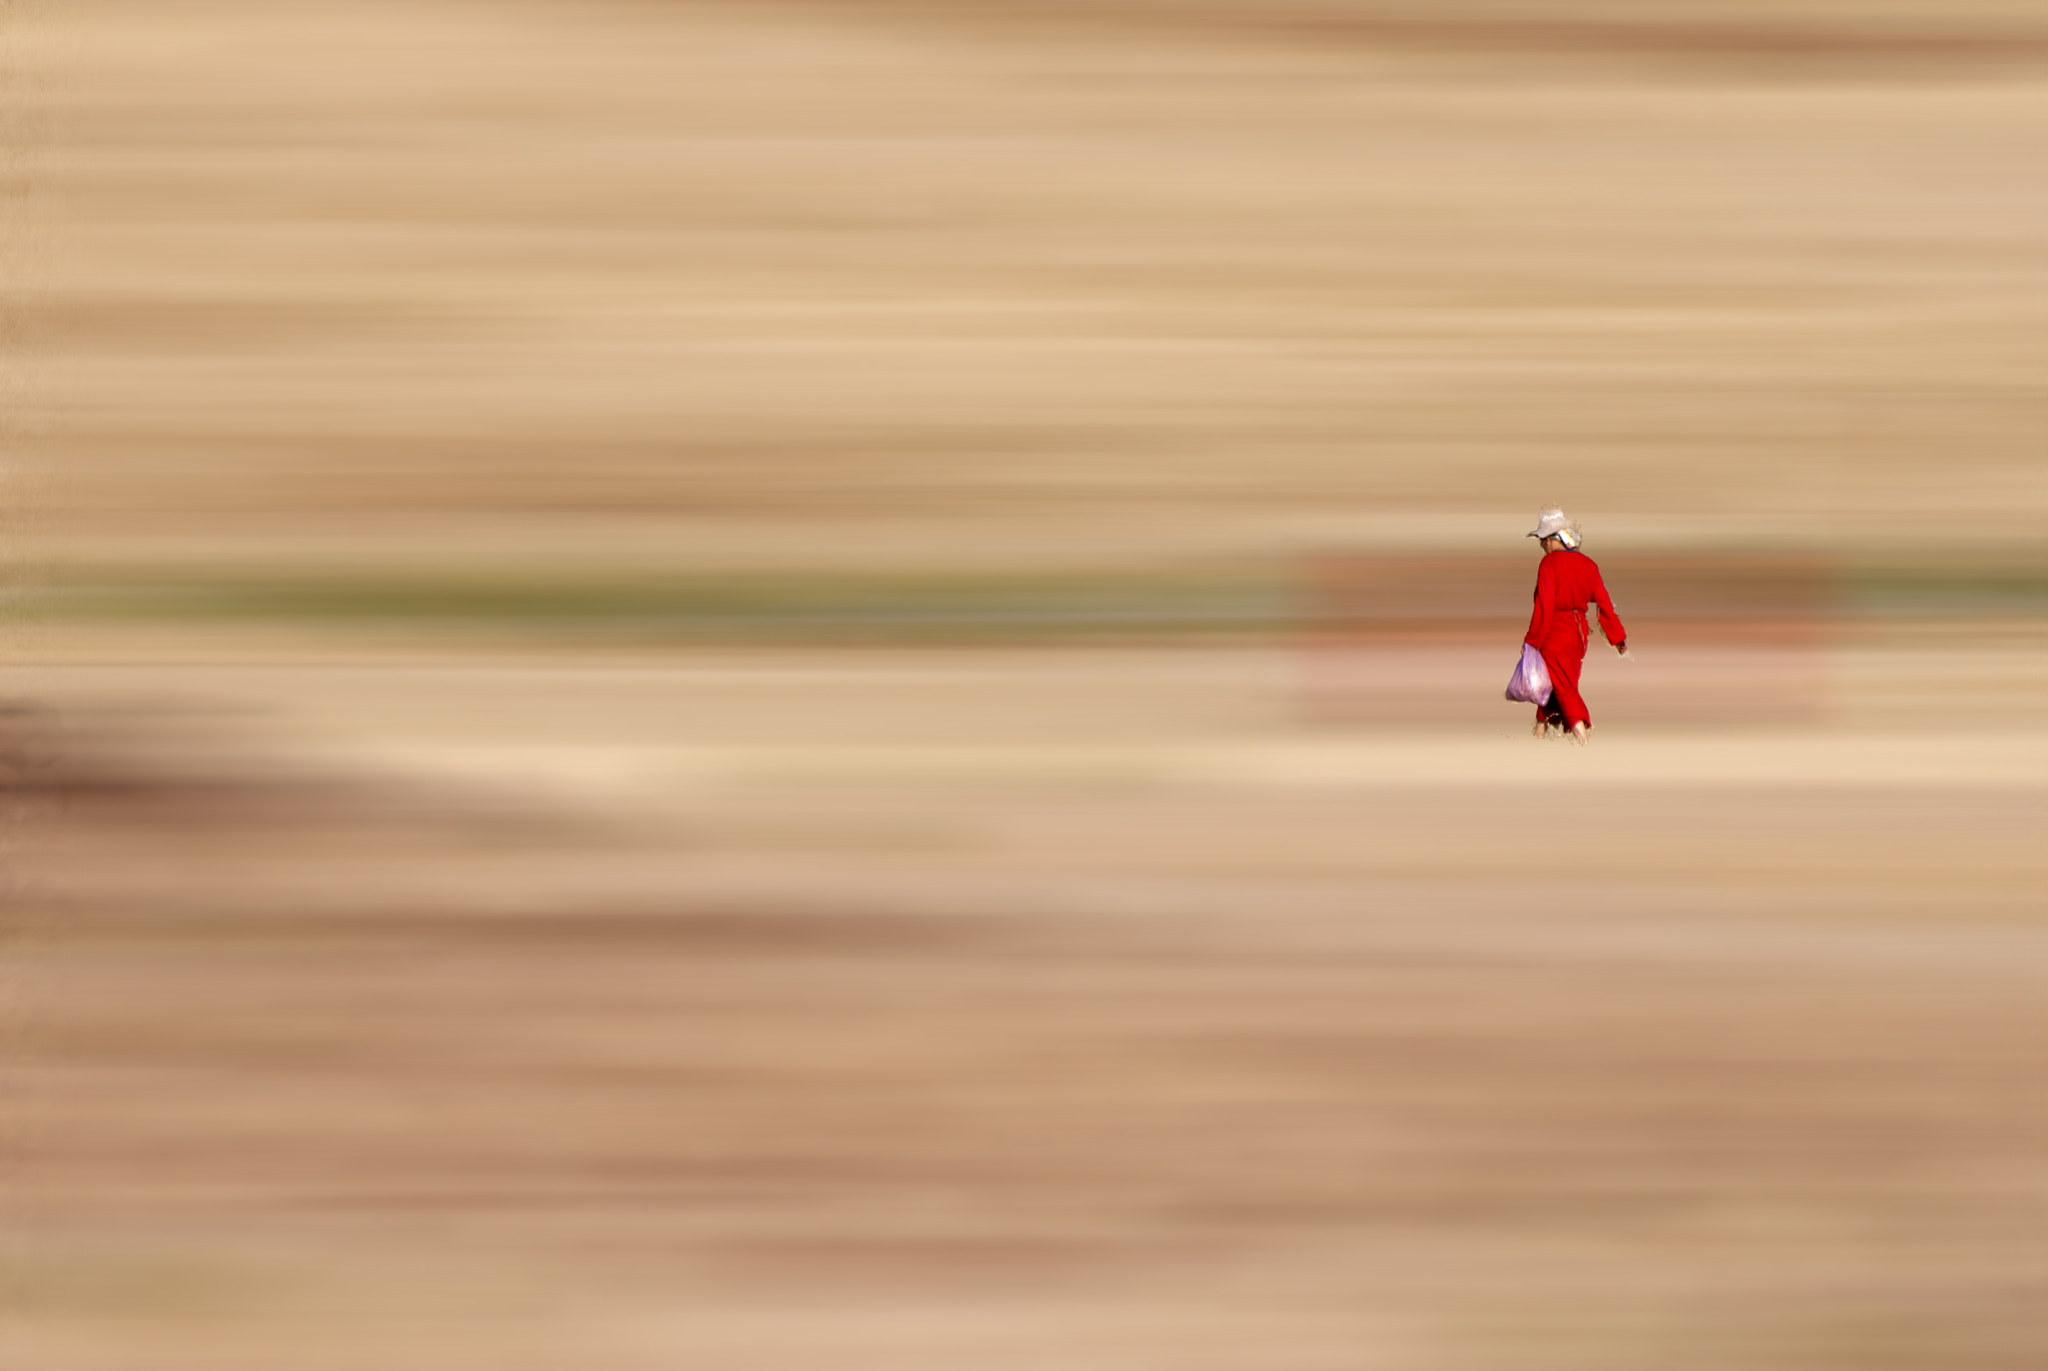 Photograph woman in red by Jamal Ouguimi on 500px